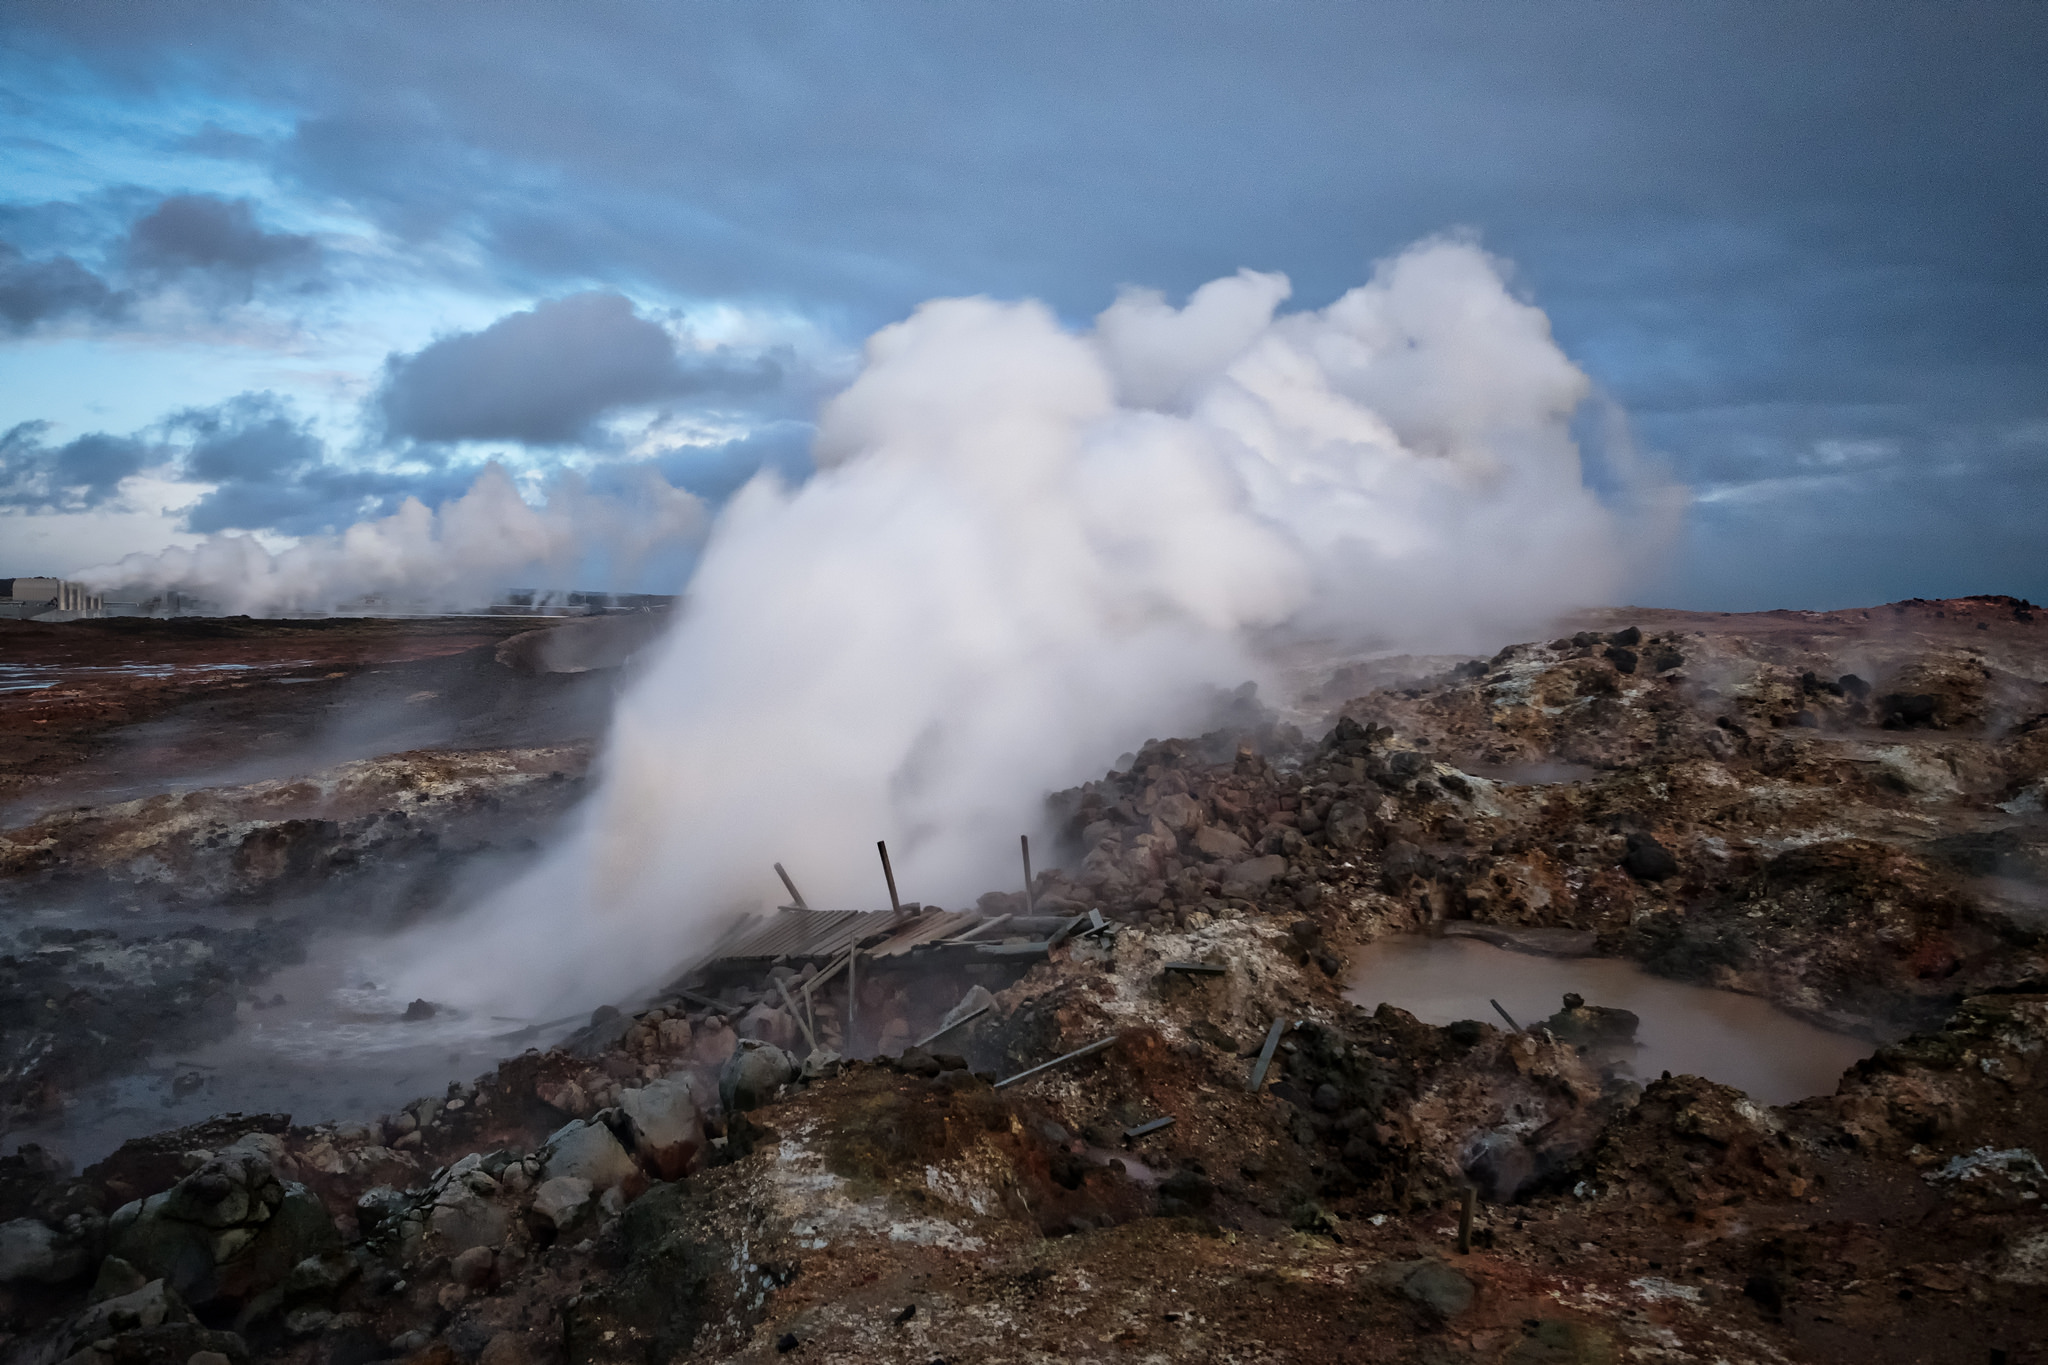 A geothermal area in Iceland (Source: guidetoiceland.is)